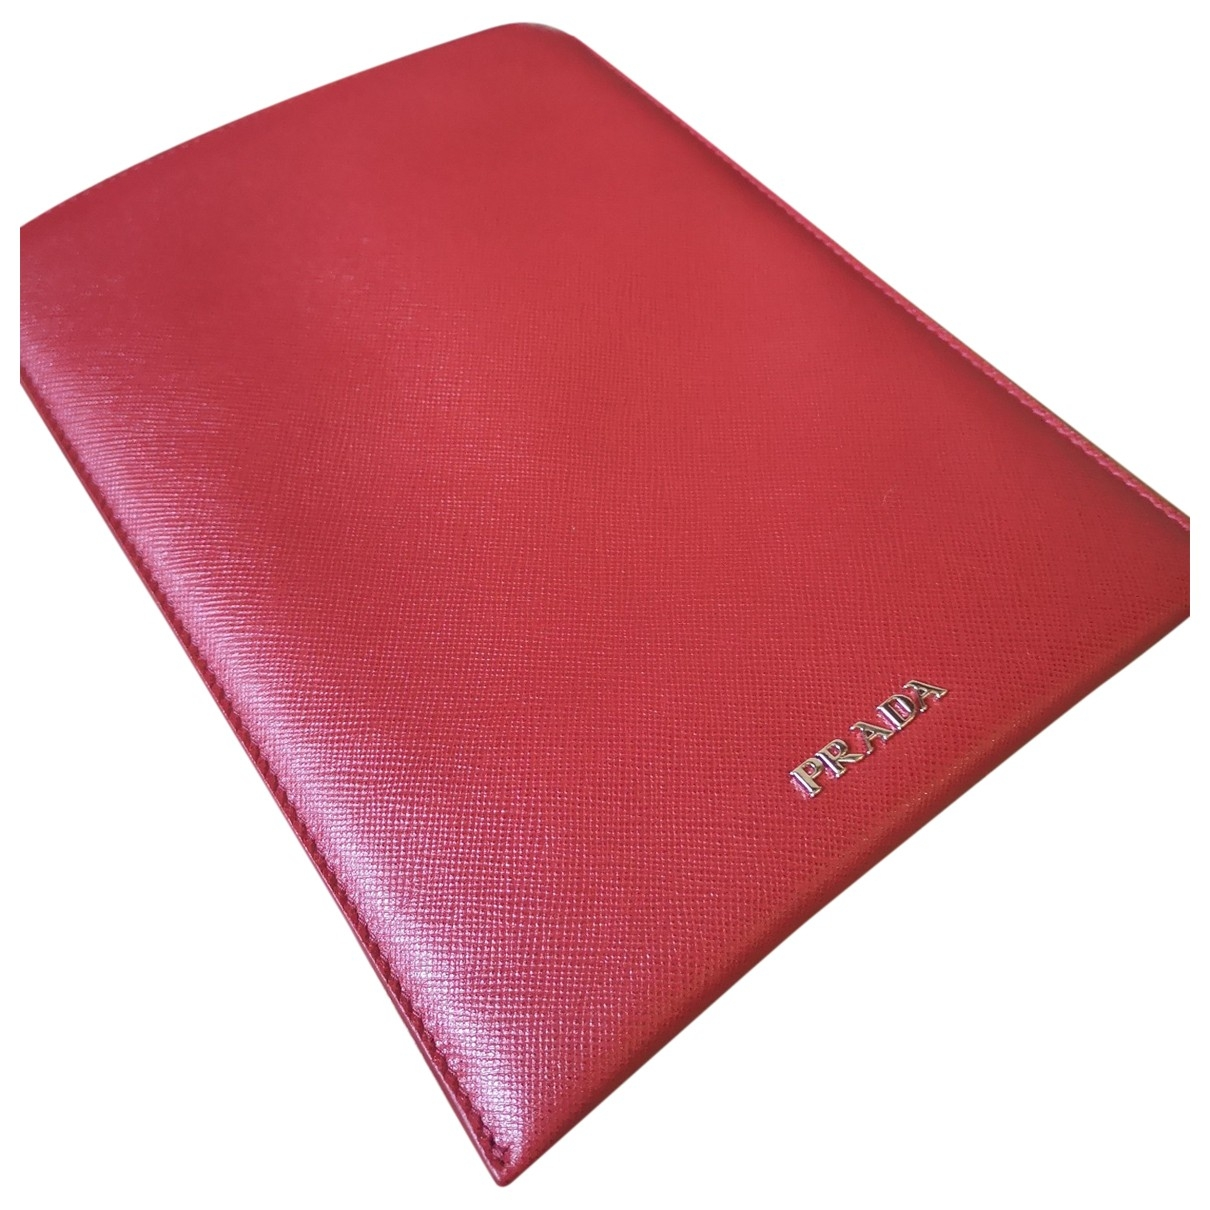 Prada \N Red Leather Accessories for Life & Living \N